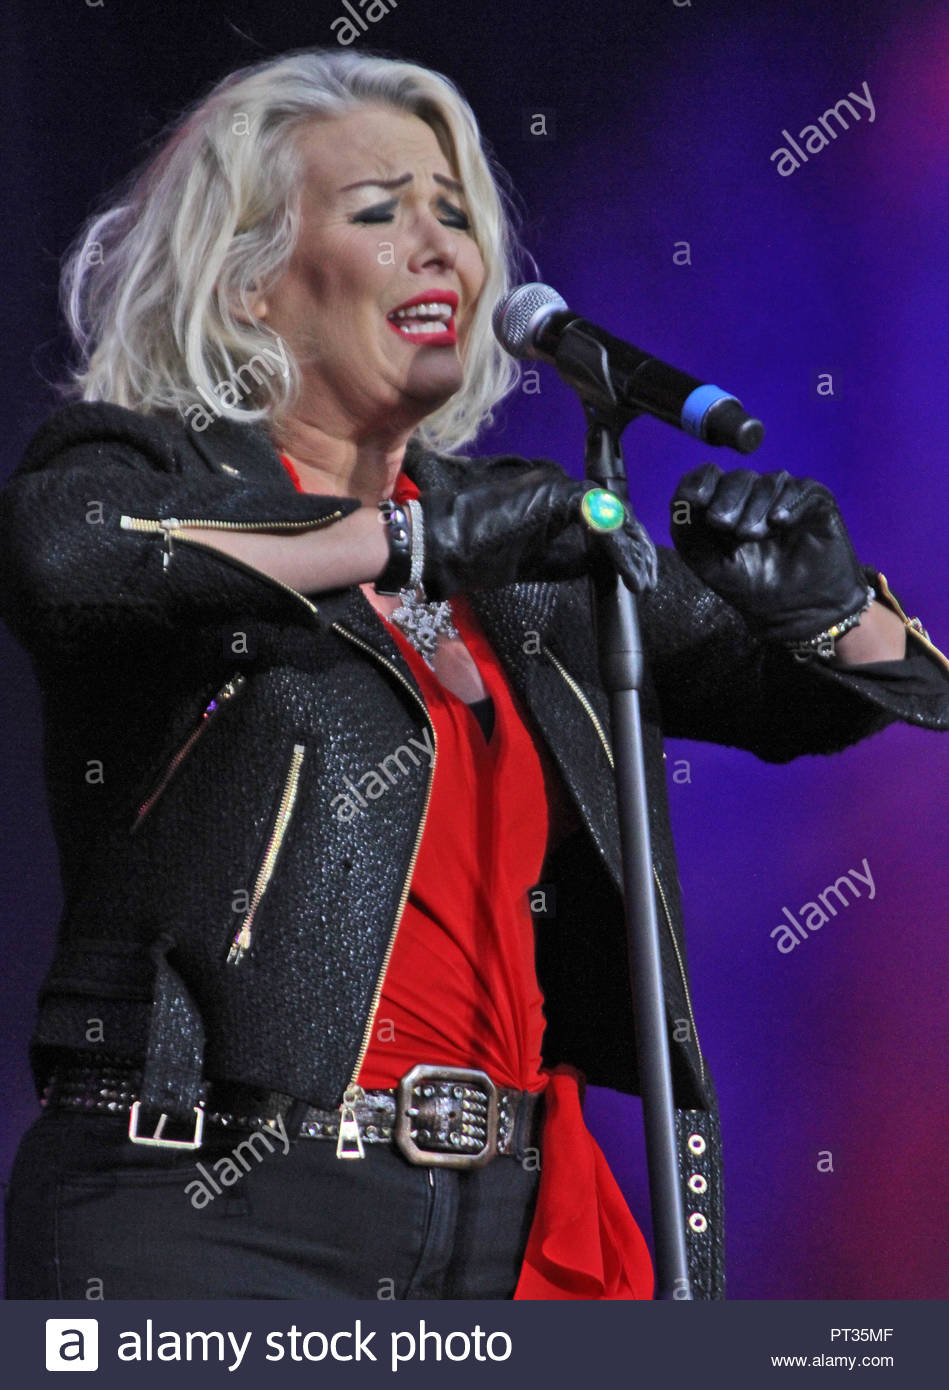 Kim Wilde at Rewind North at Capesthorne Hall, Siddington, Cheshire on Saturday 05 August 2017 - Stock Image